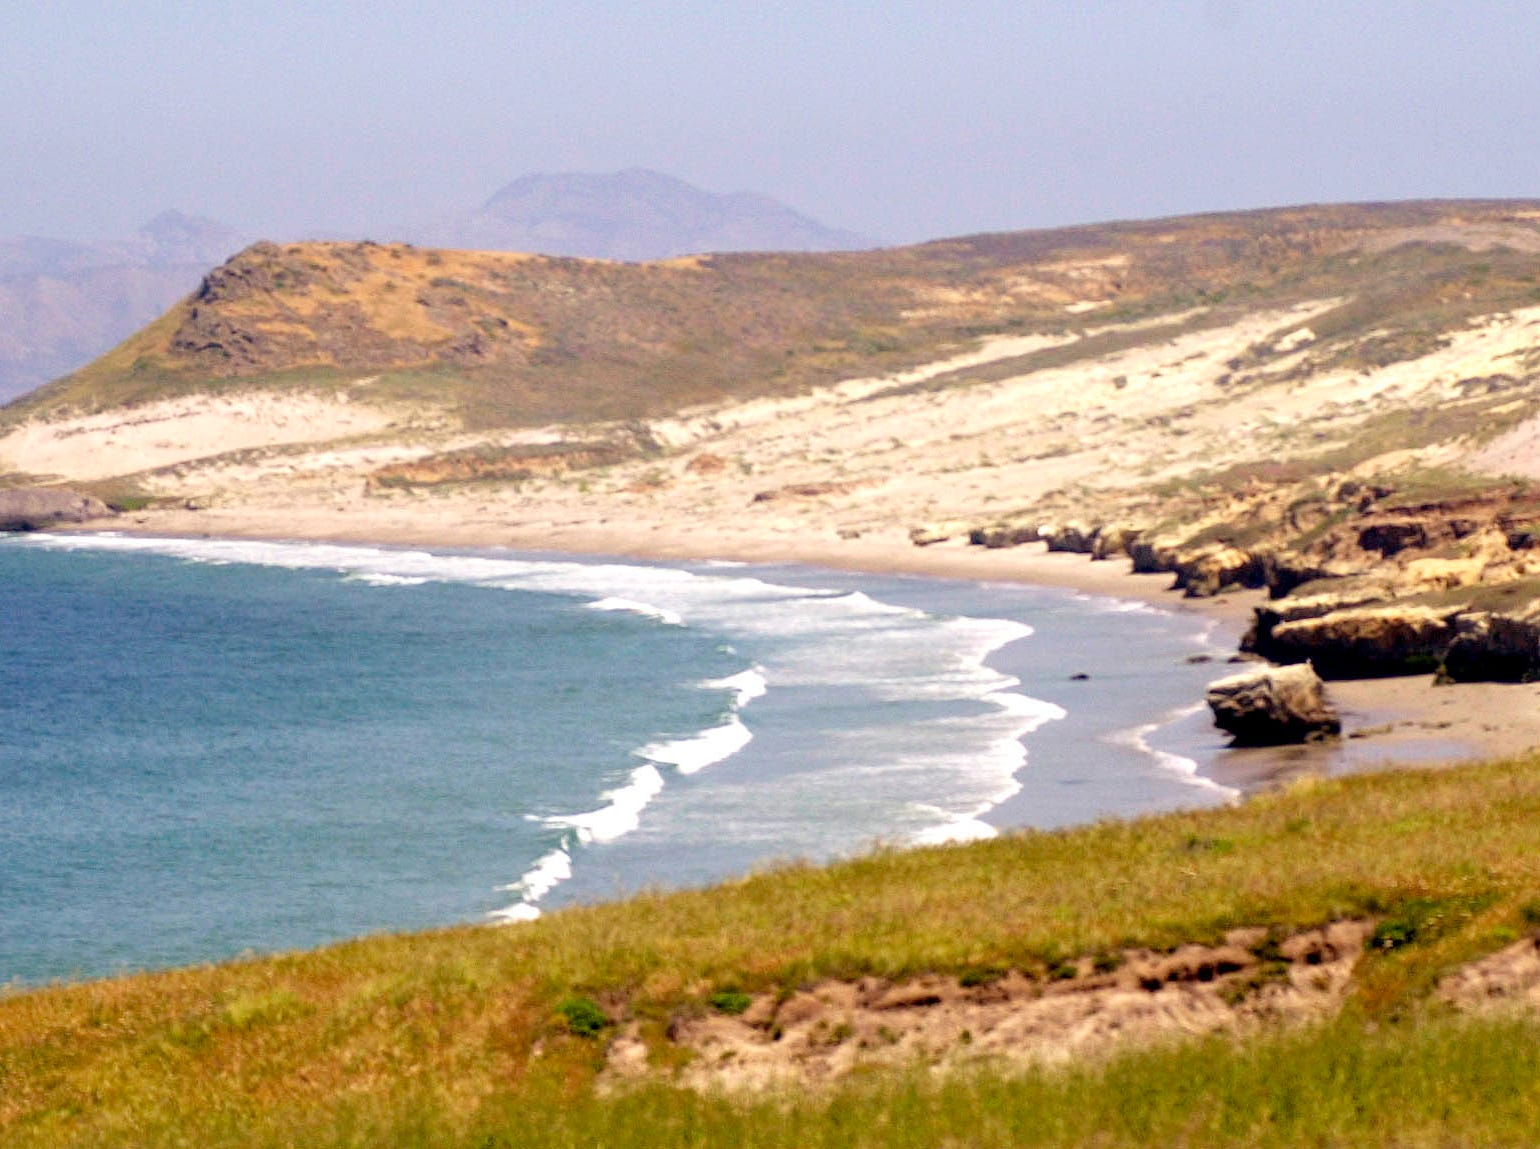 ** FILE ** Santa Rosa Island in Channel Islands National Park off the coast of Southern California, is seen here in a  March 8, 2005, file photo. Congressional Democrats intend to move the week of Dec. 17, 2007, to repeal a law allowing deer and elk hunts to continue indefinitely on the island.(AP Photo/Santa Barbara News-Press, Mike Eliason, File) ORG XMIT: CABAR501